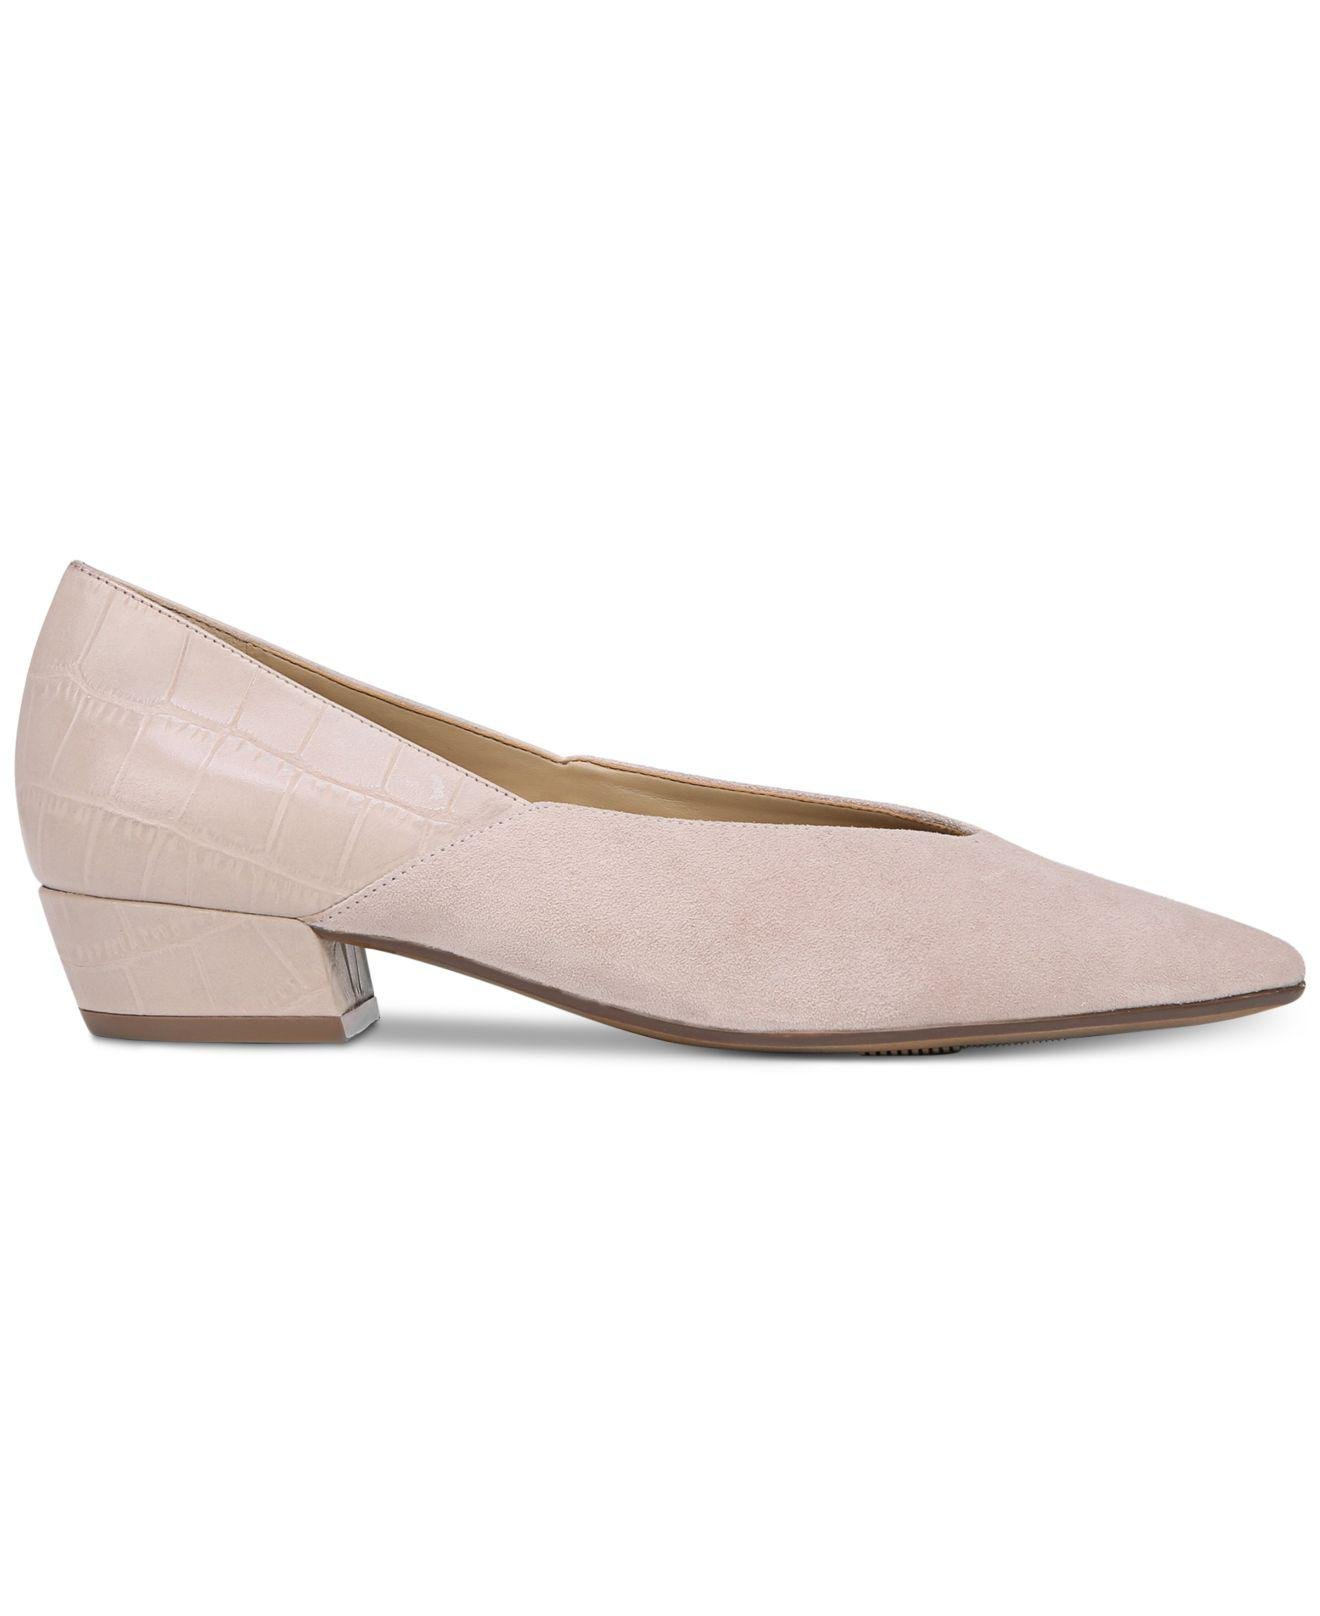 1fddaad2574e Lyst - Naturalizer Betty Pumps in Natural